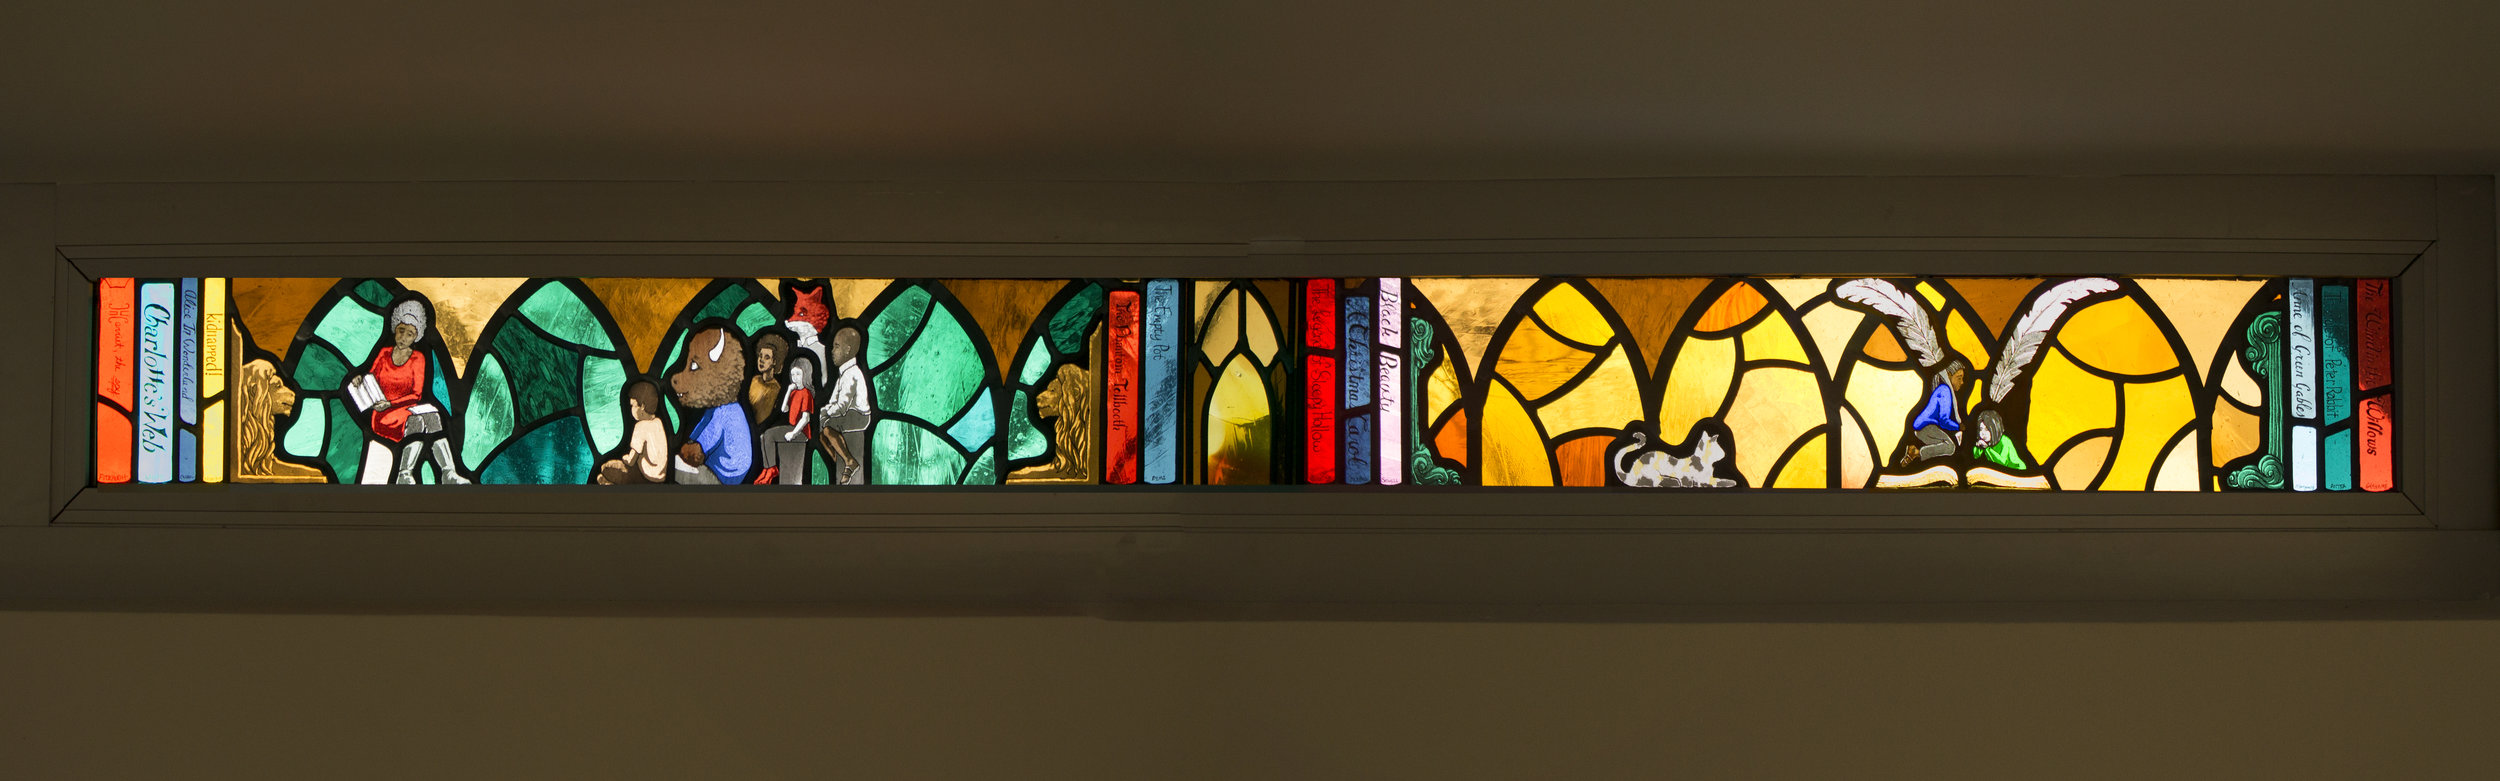 "Panel 1 of ""Explore"", a 17' long frieze of windows at Lovett Library in Mt Airy, Philadelphia, PA."